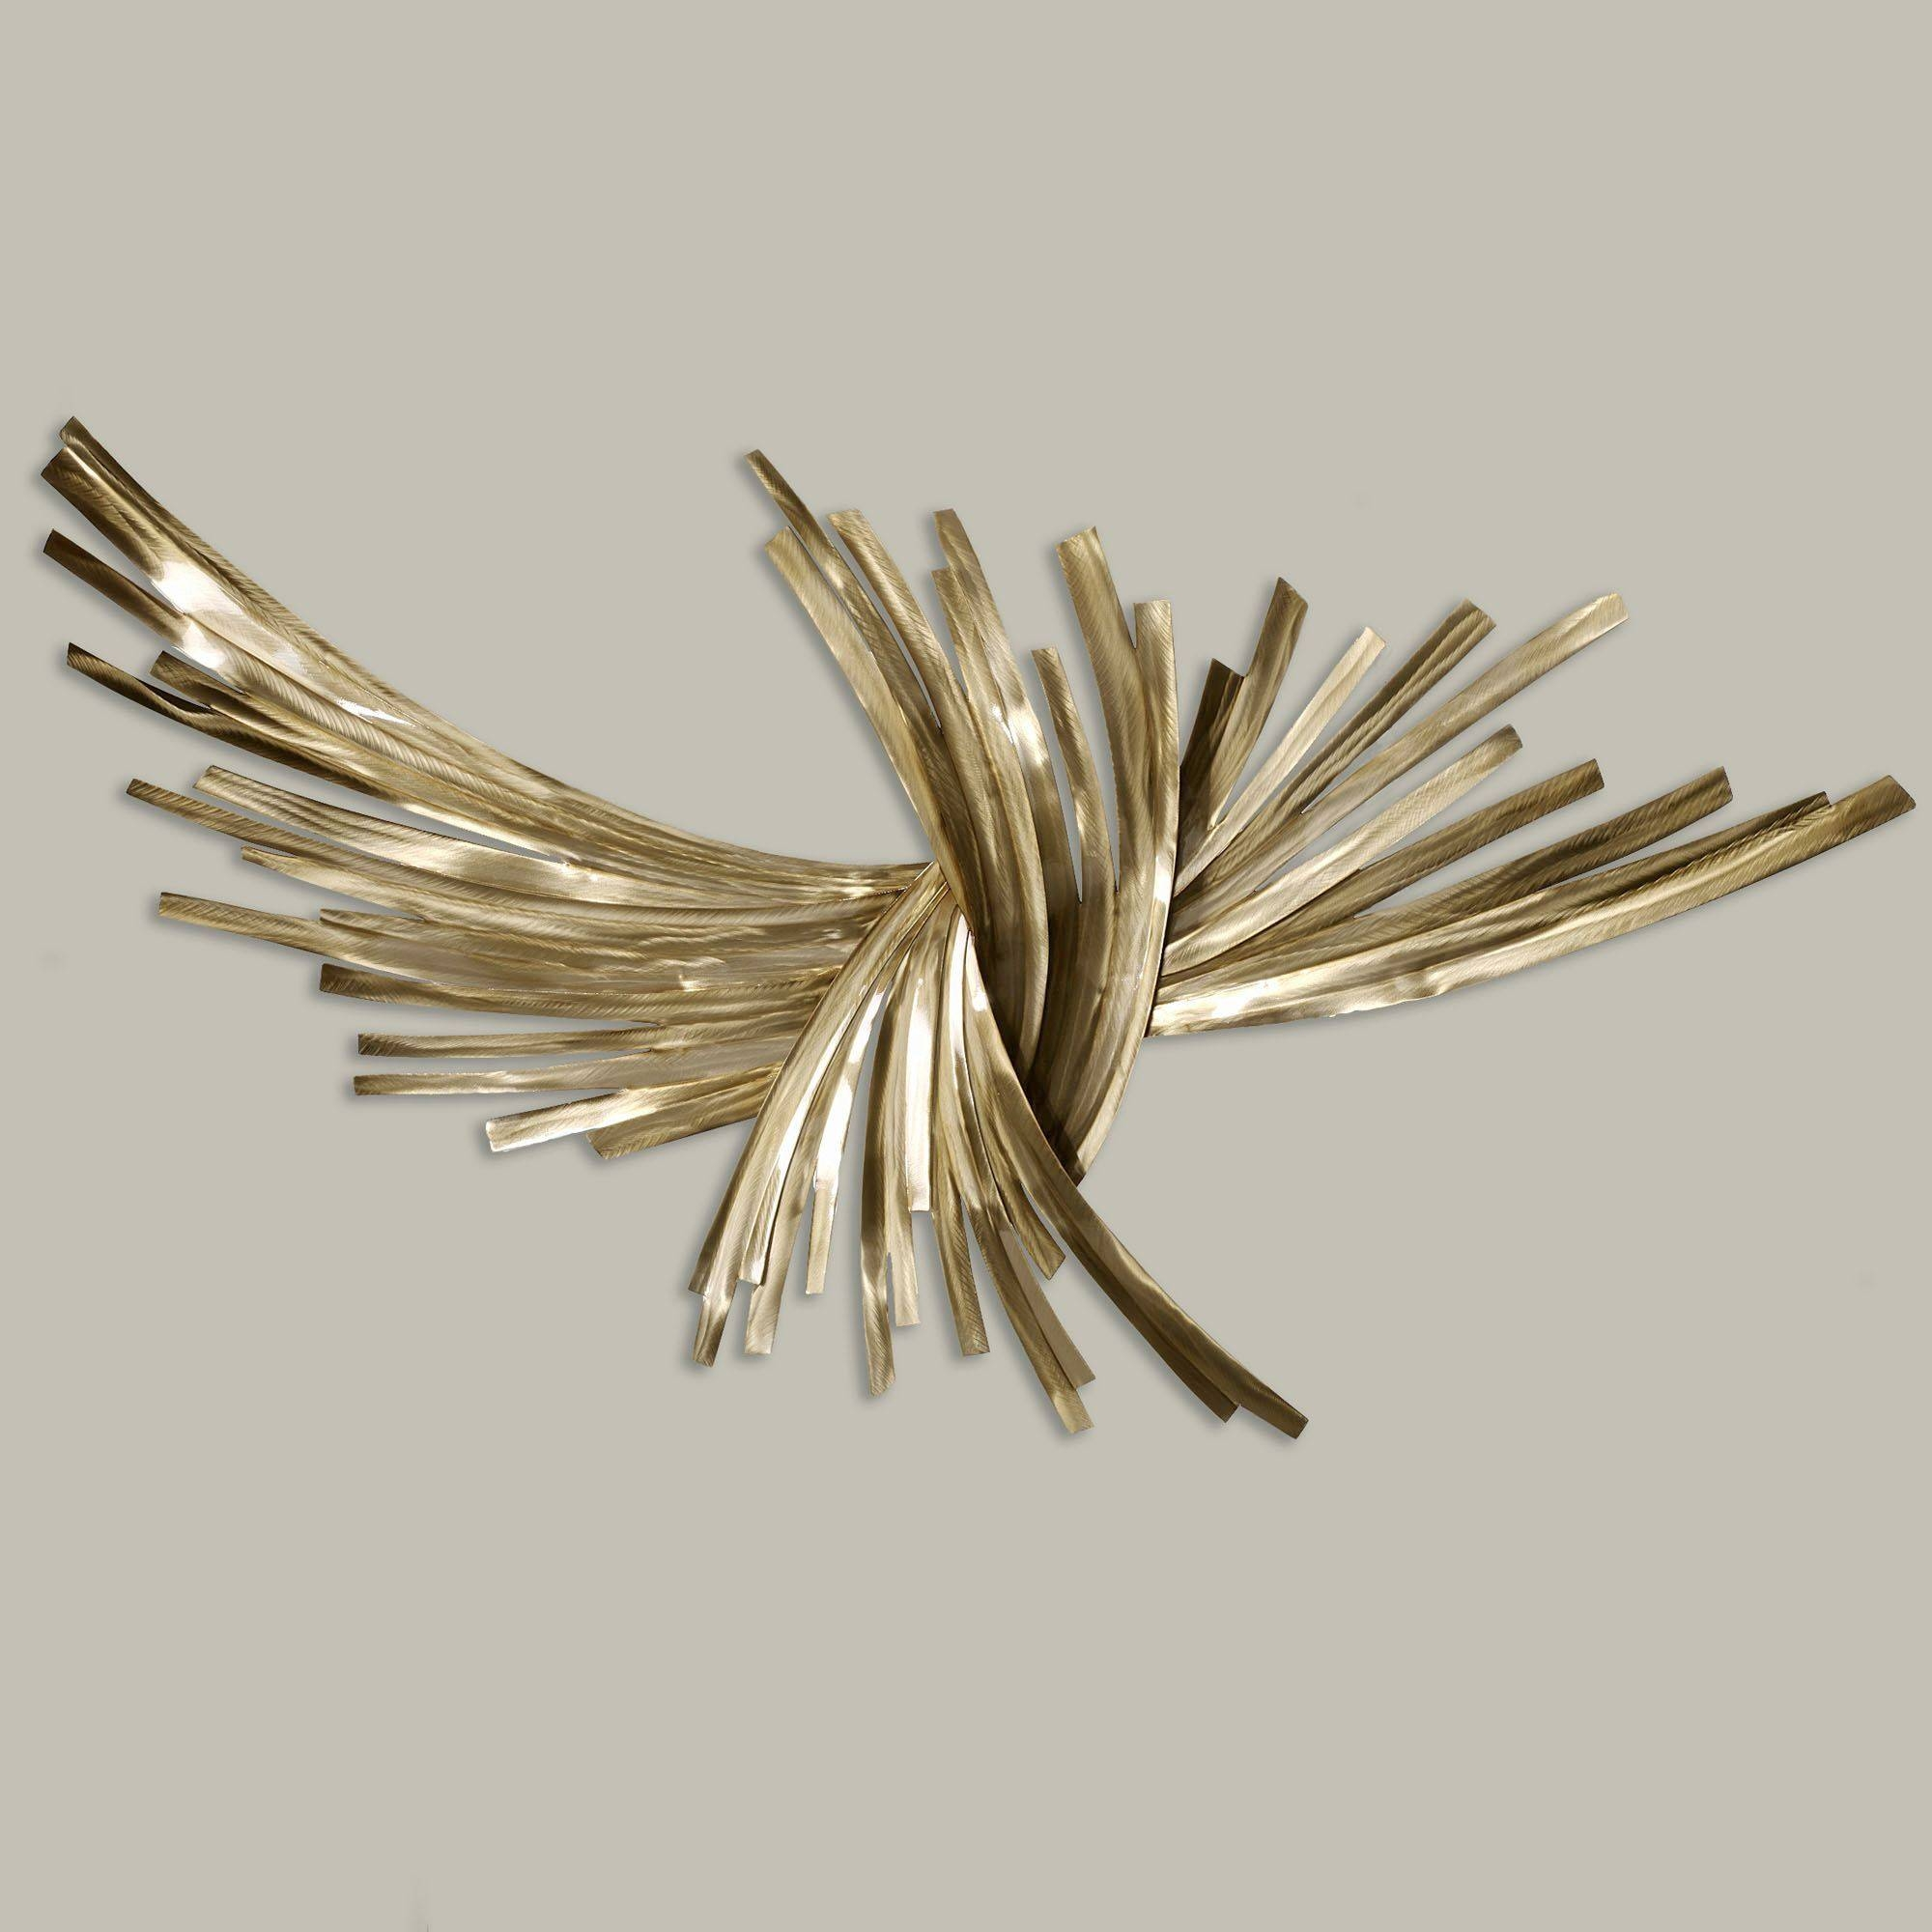 Contemporary Metal Wall Art Sculptures | Touch Of Class Pertaining To Most Recent Contemporary Metal Wall Art Sculptures (View 5 of 20)